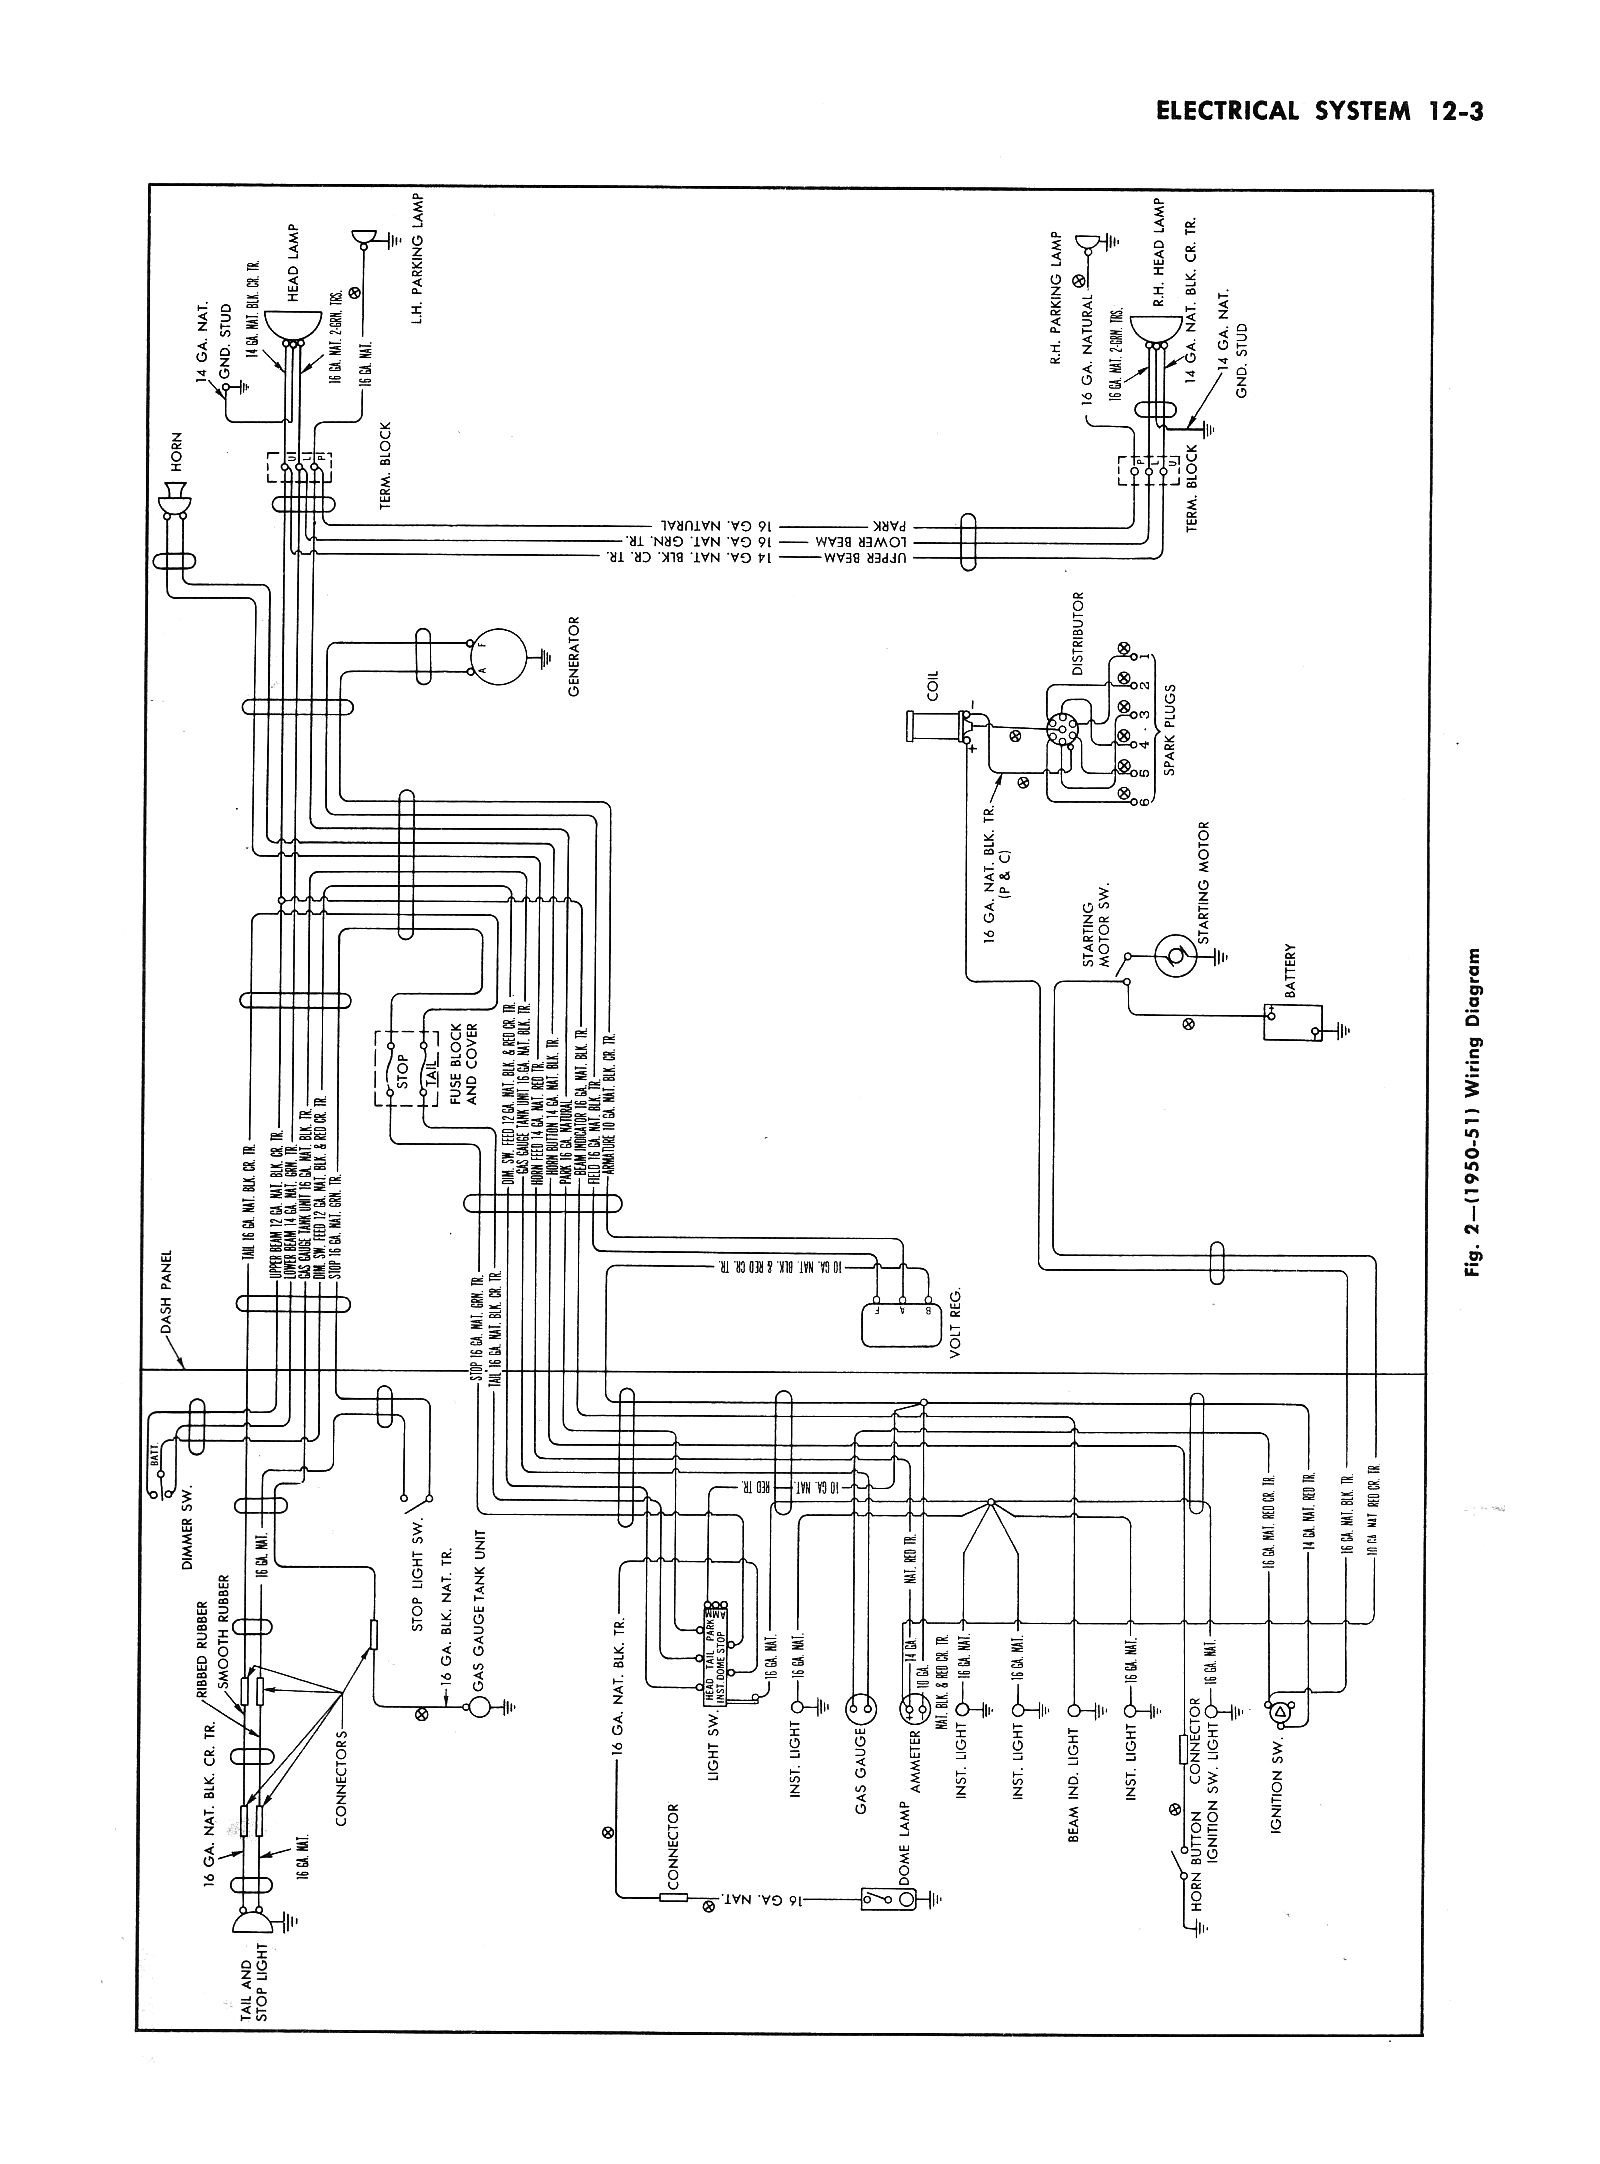 1956 chevy truck emergency ke diagram schematic wiring diagram rh 2 9 wwww dualer student de